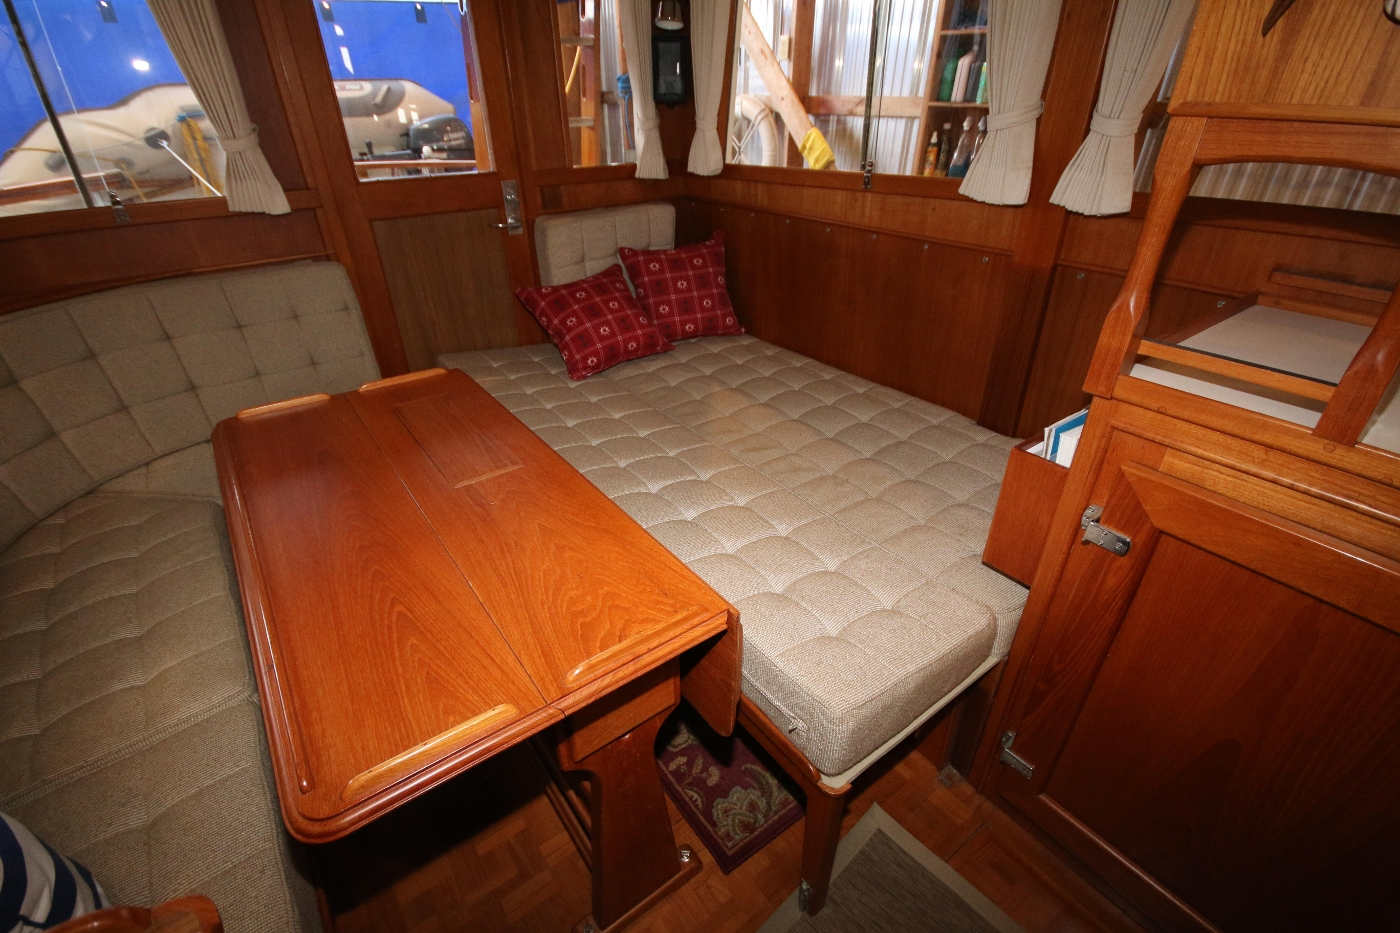 1988 Grand Banks 32, Settee folds out to Double Berth